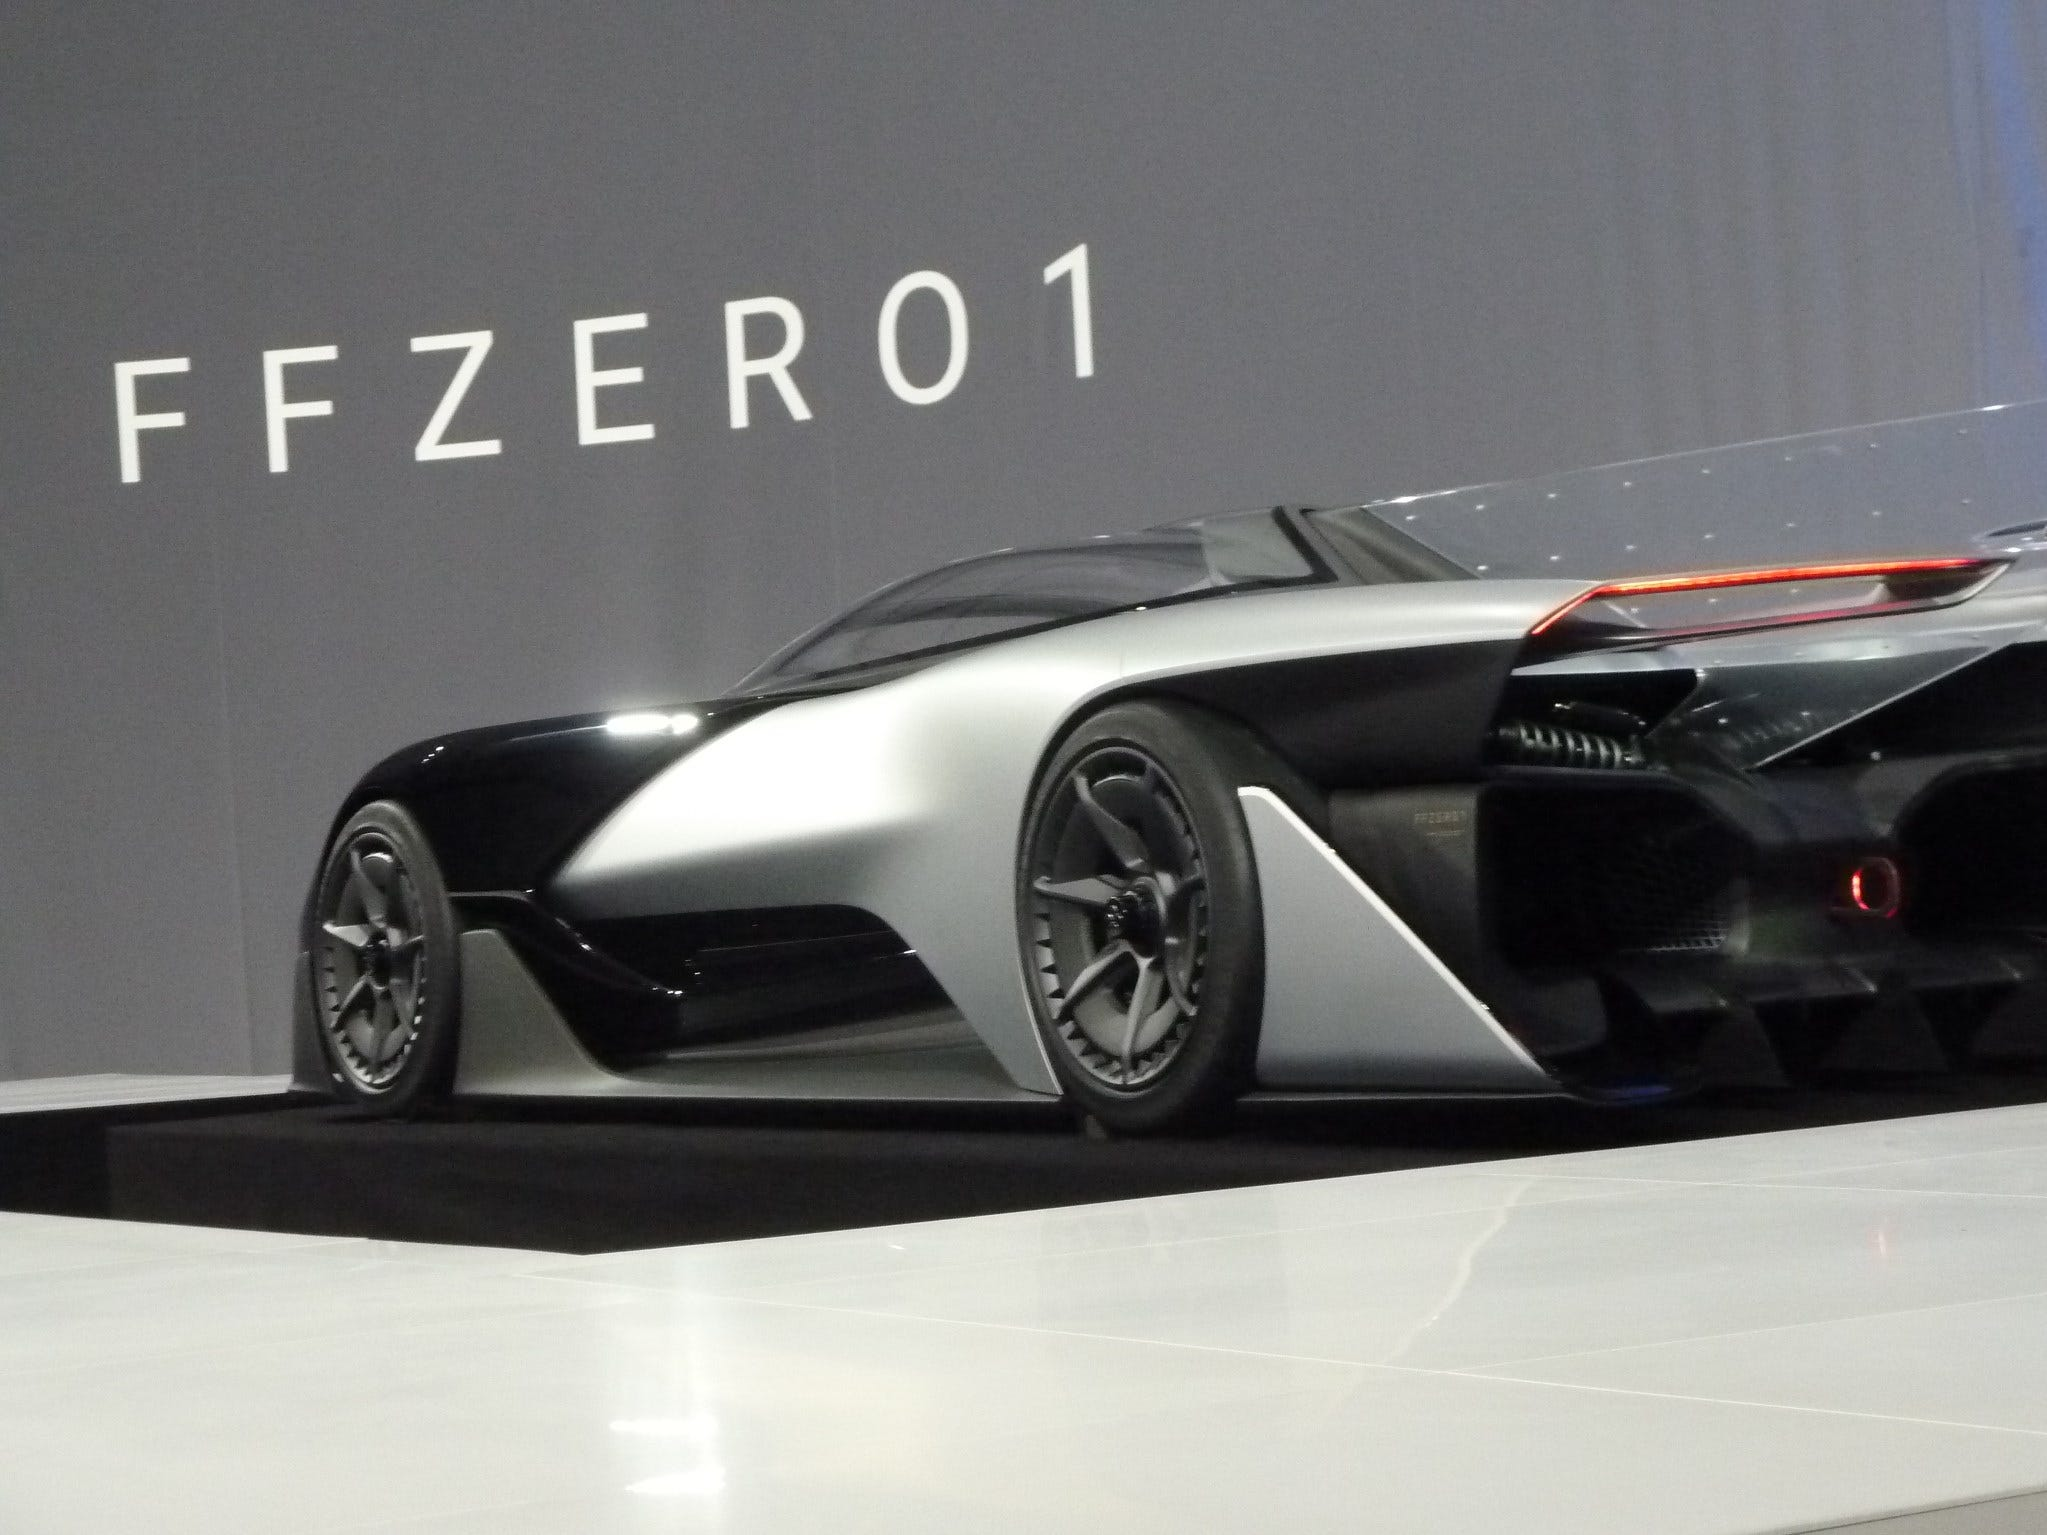 The new concept electric car FFZERO is unveiled by California startup Faraday Future during the Consumer Electronics Show on Jan. 4, 2016, in Las Vegas.